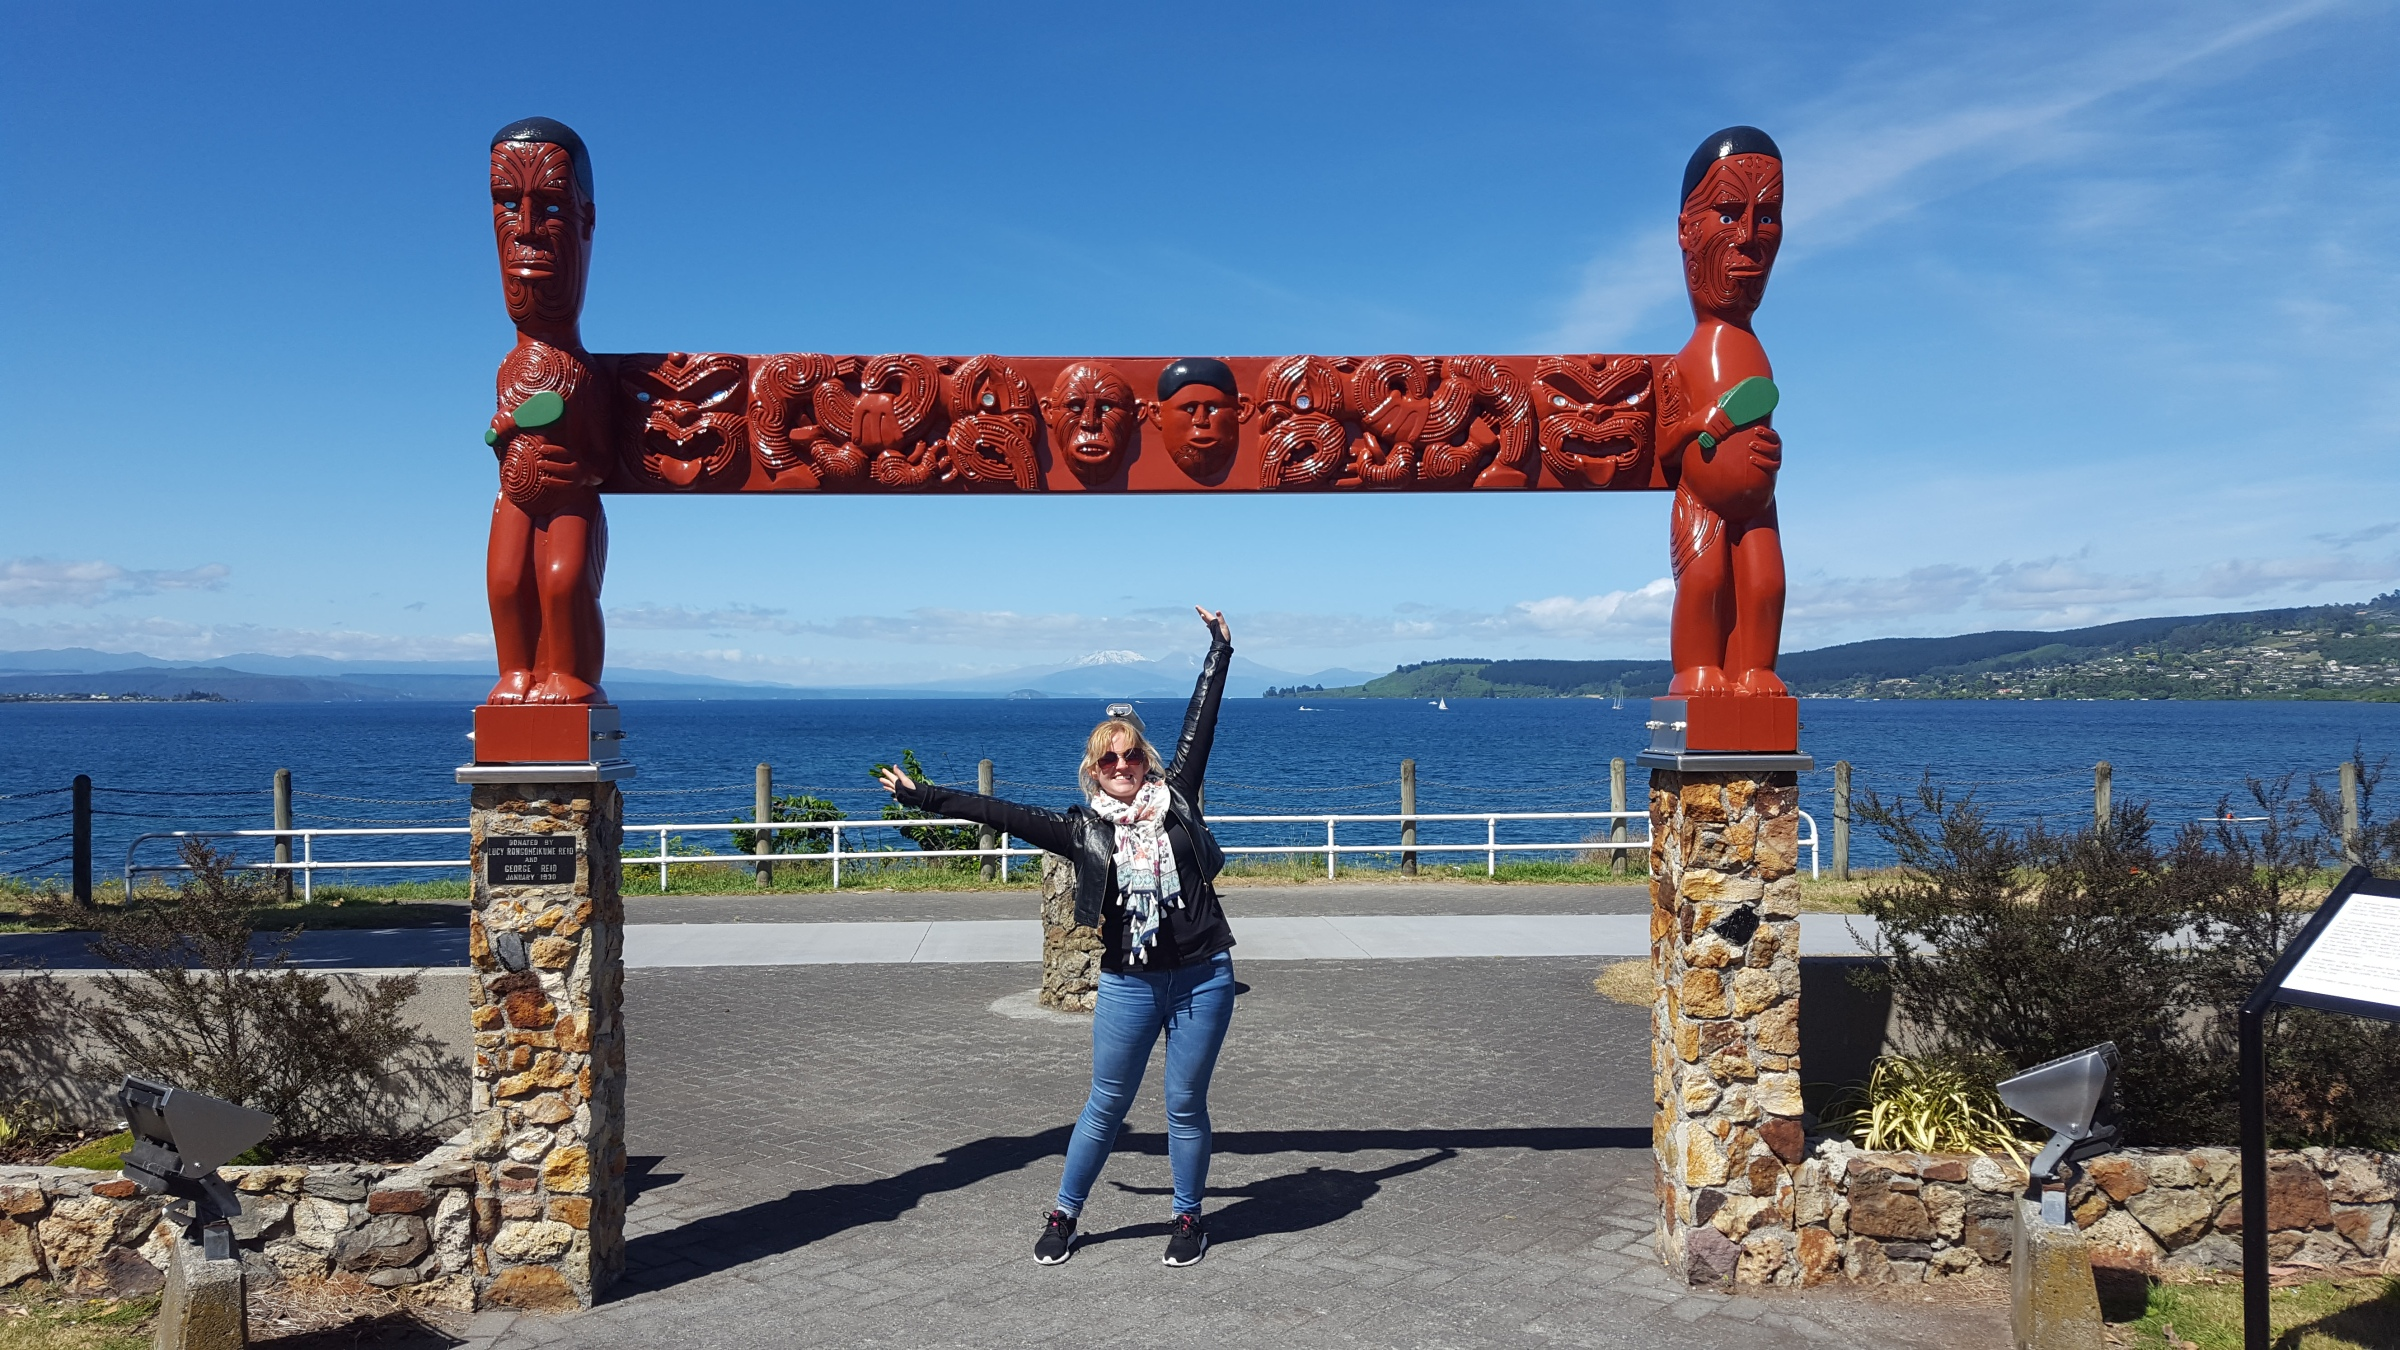 Classic tourist photo in New Zealand